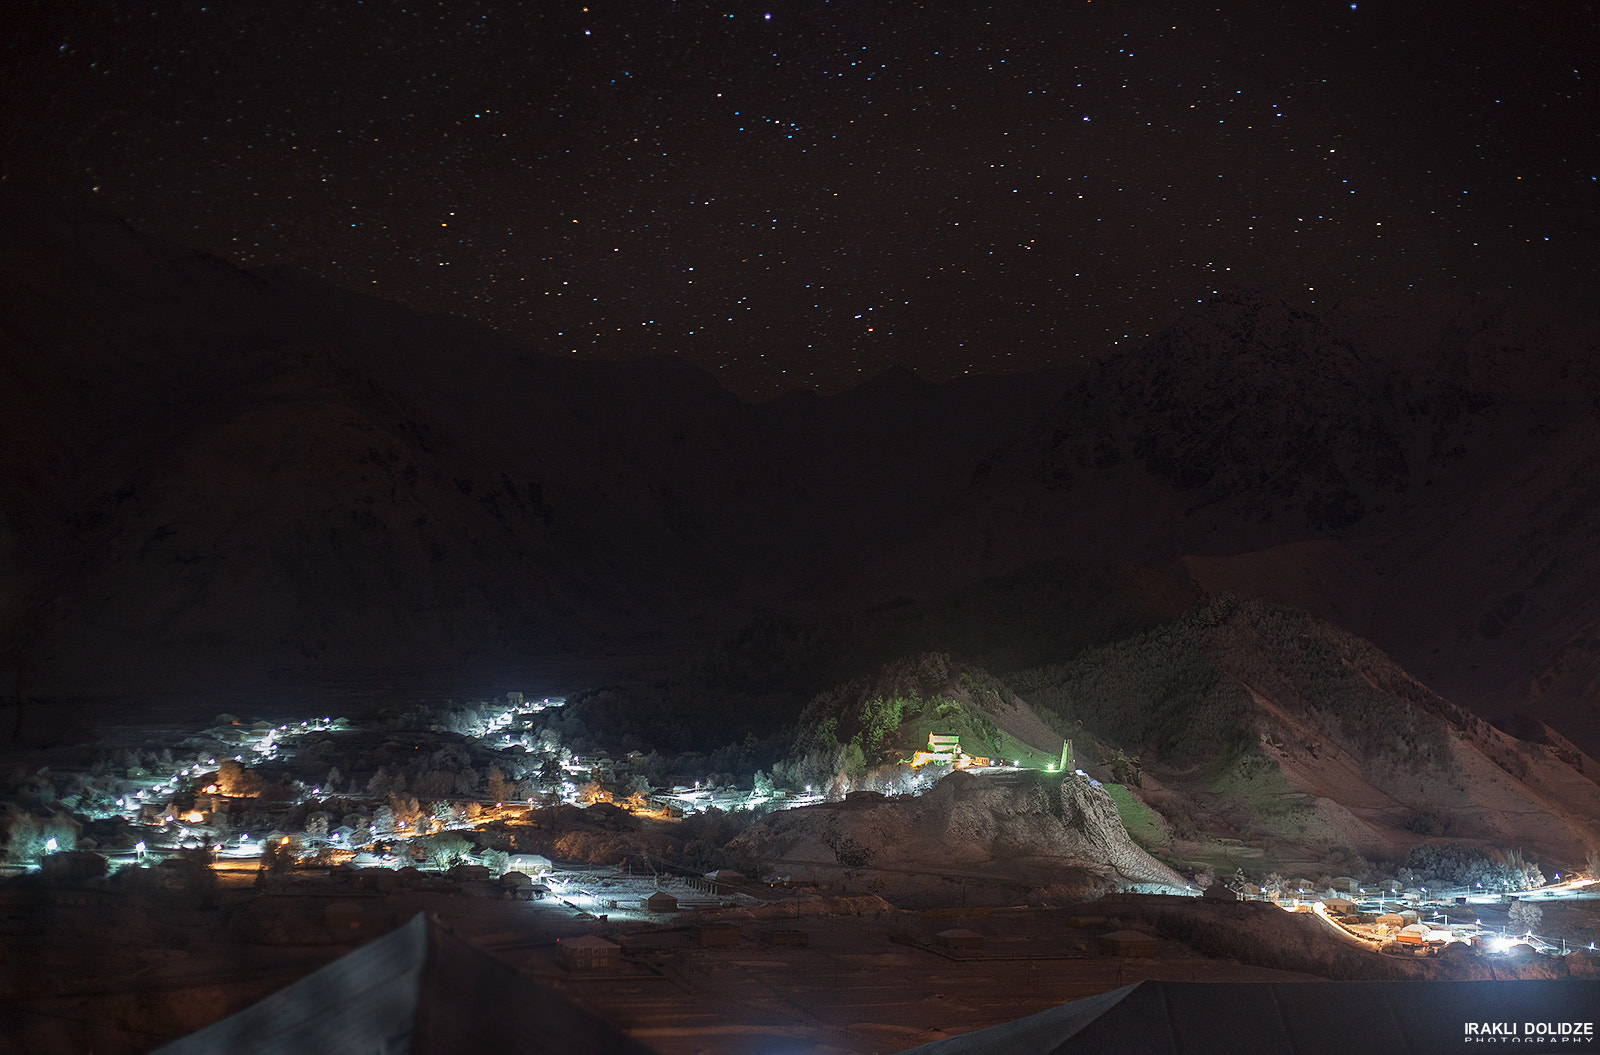 Photograph Kazbegi, Sioni by IRAKLI DOLIDZE on 500px